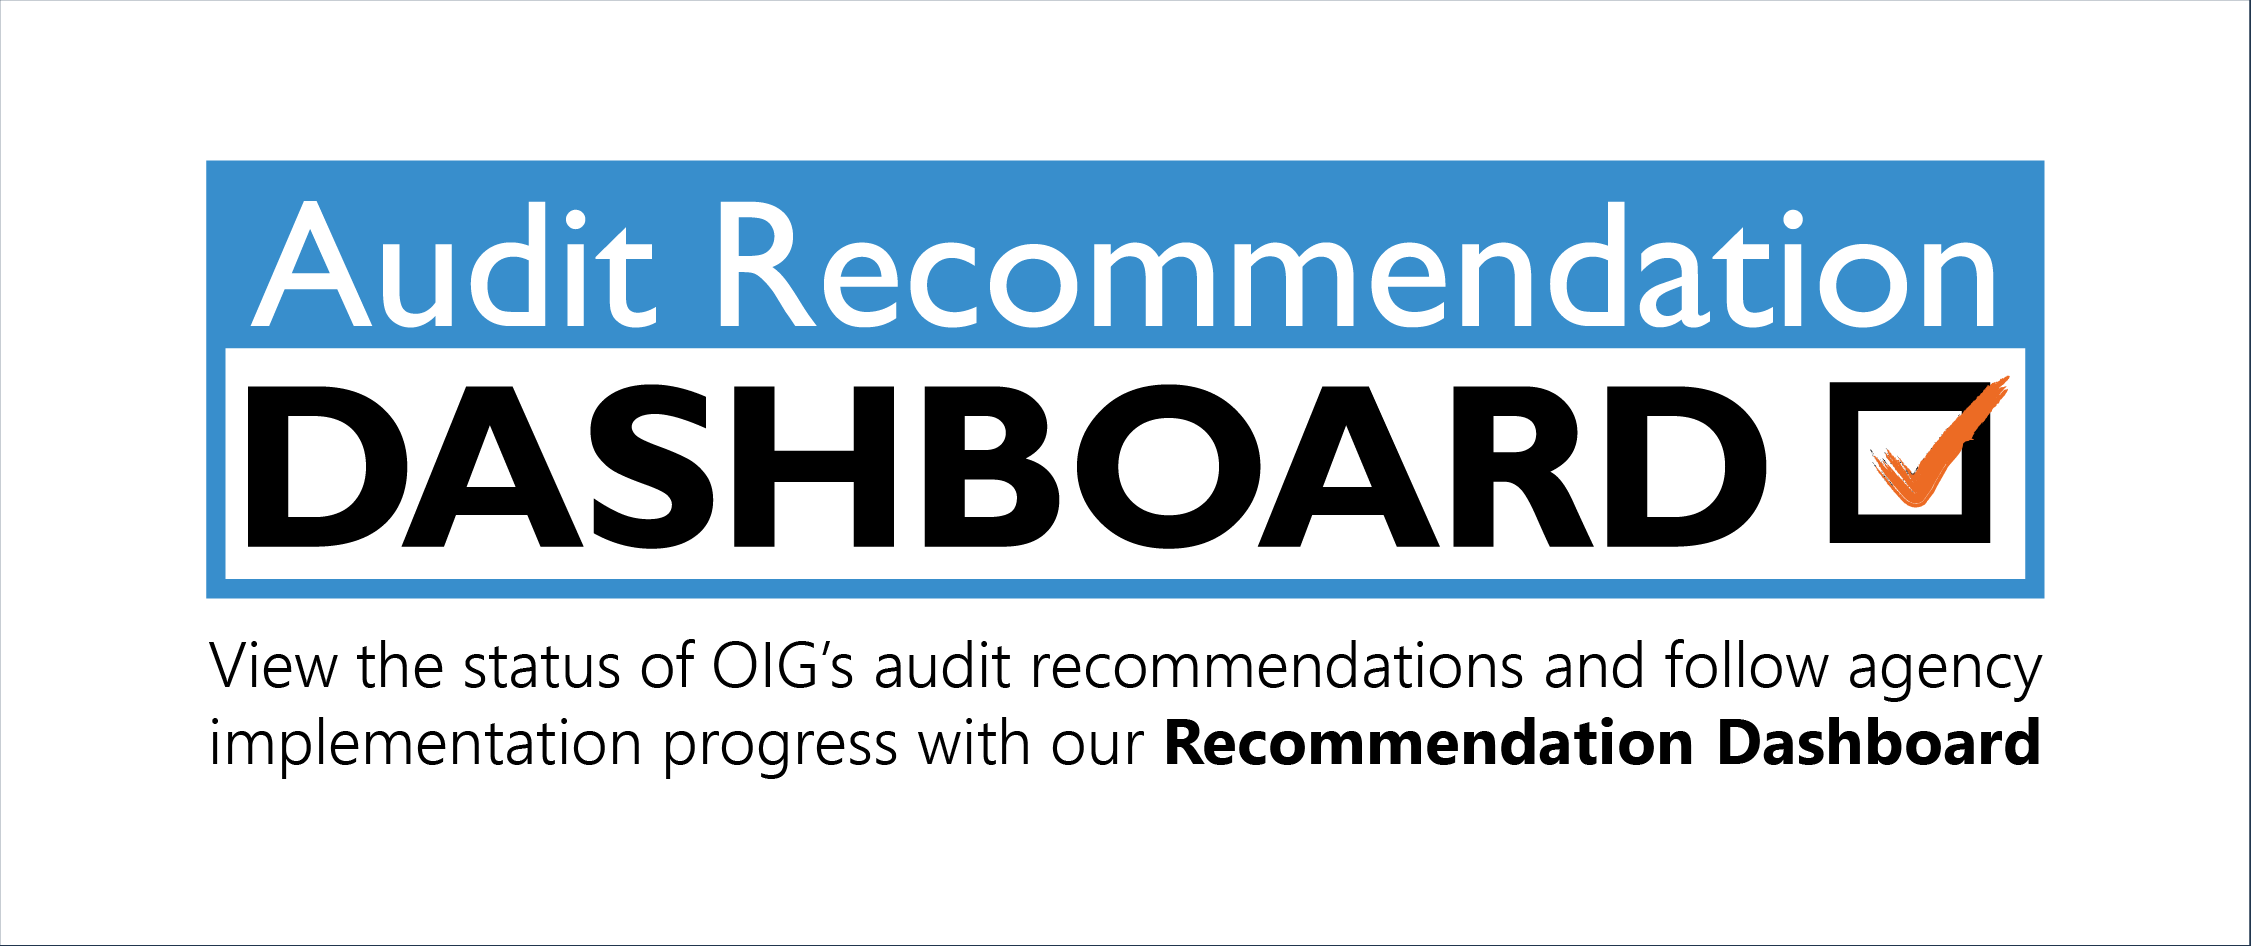 Audit Recommendation Dashboard: View the status of OIG's audit recommendations and follow agency implementation progress with our Recommendation Dashboard